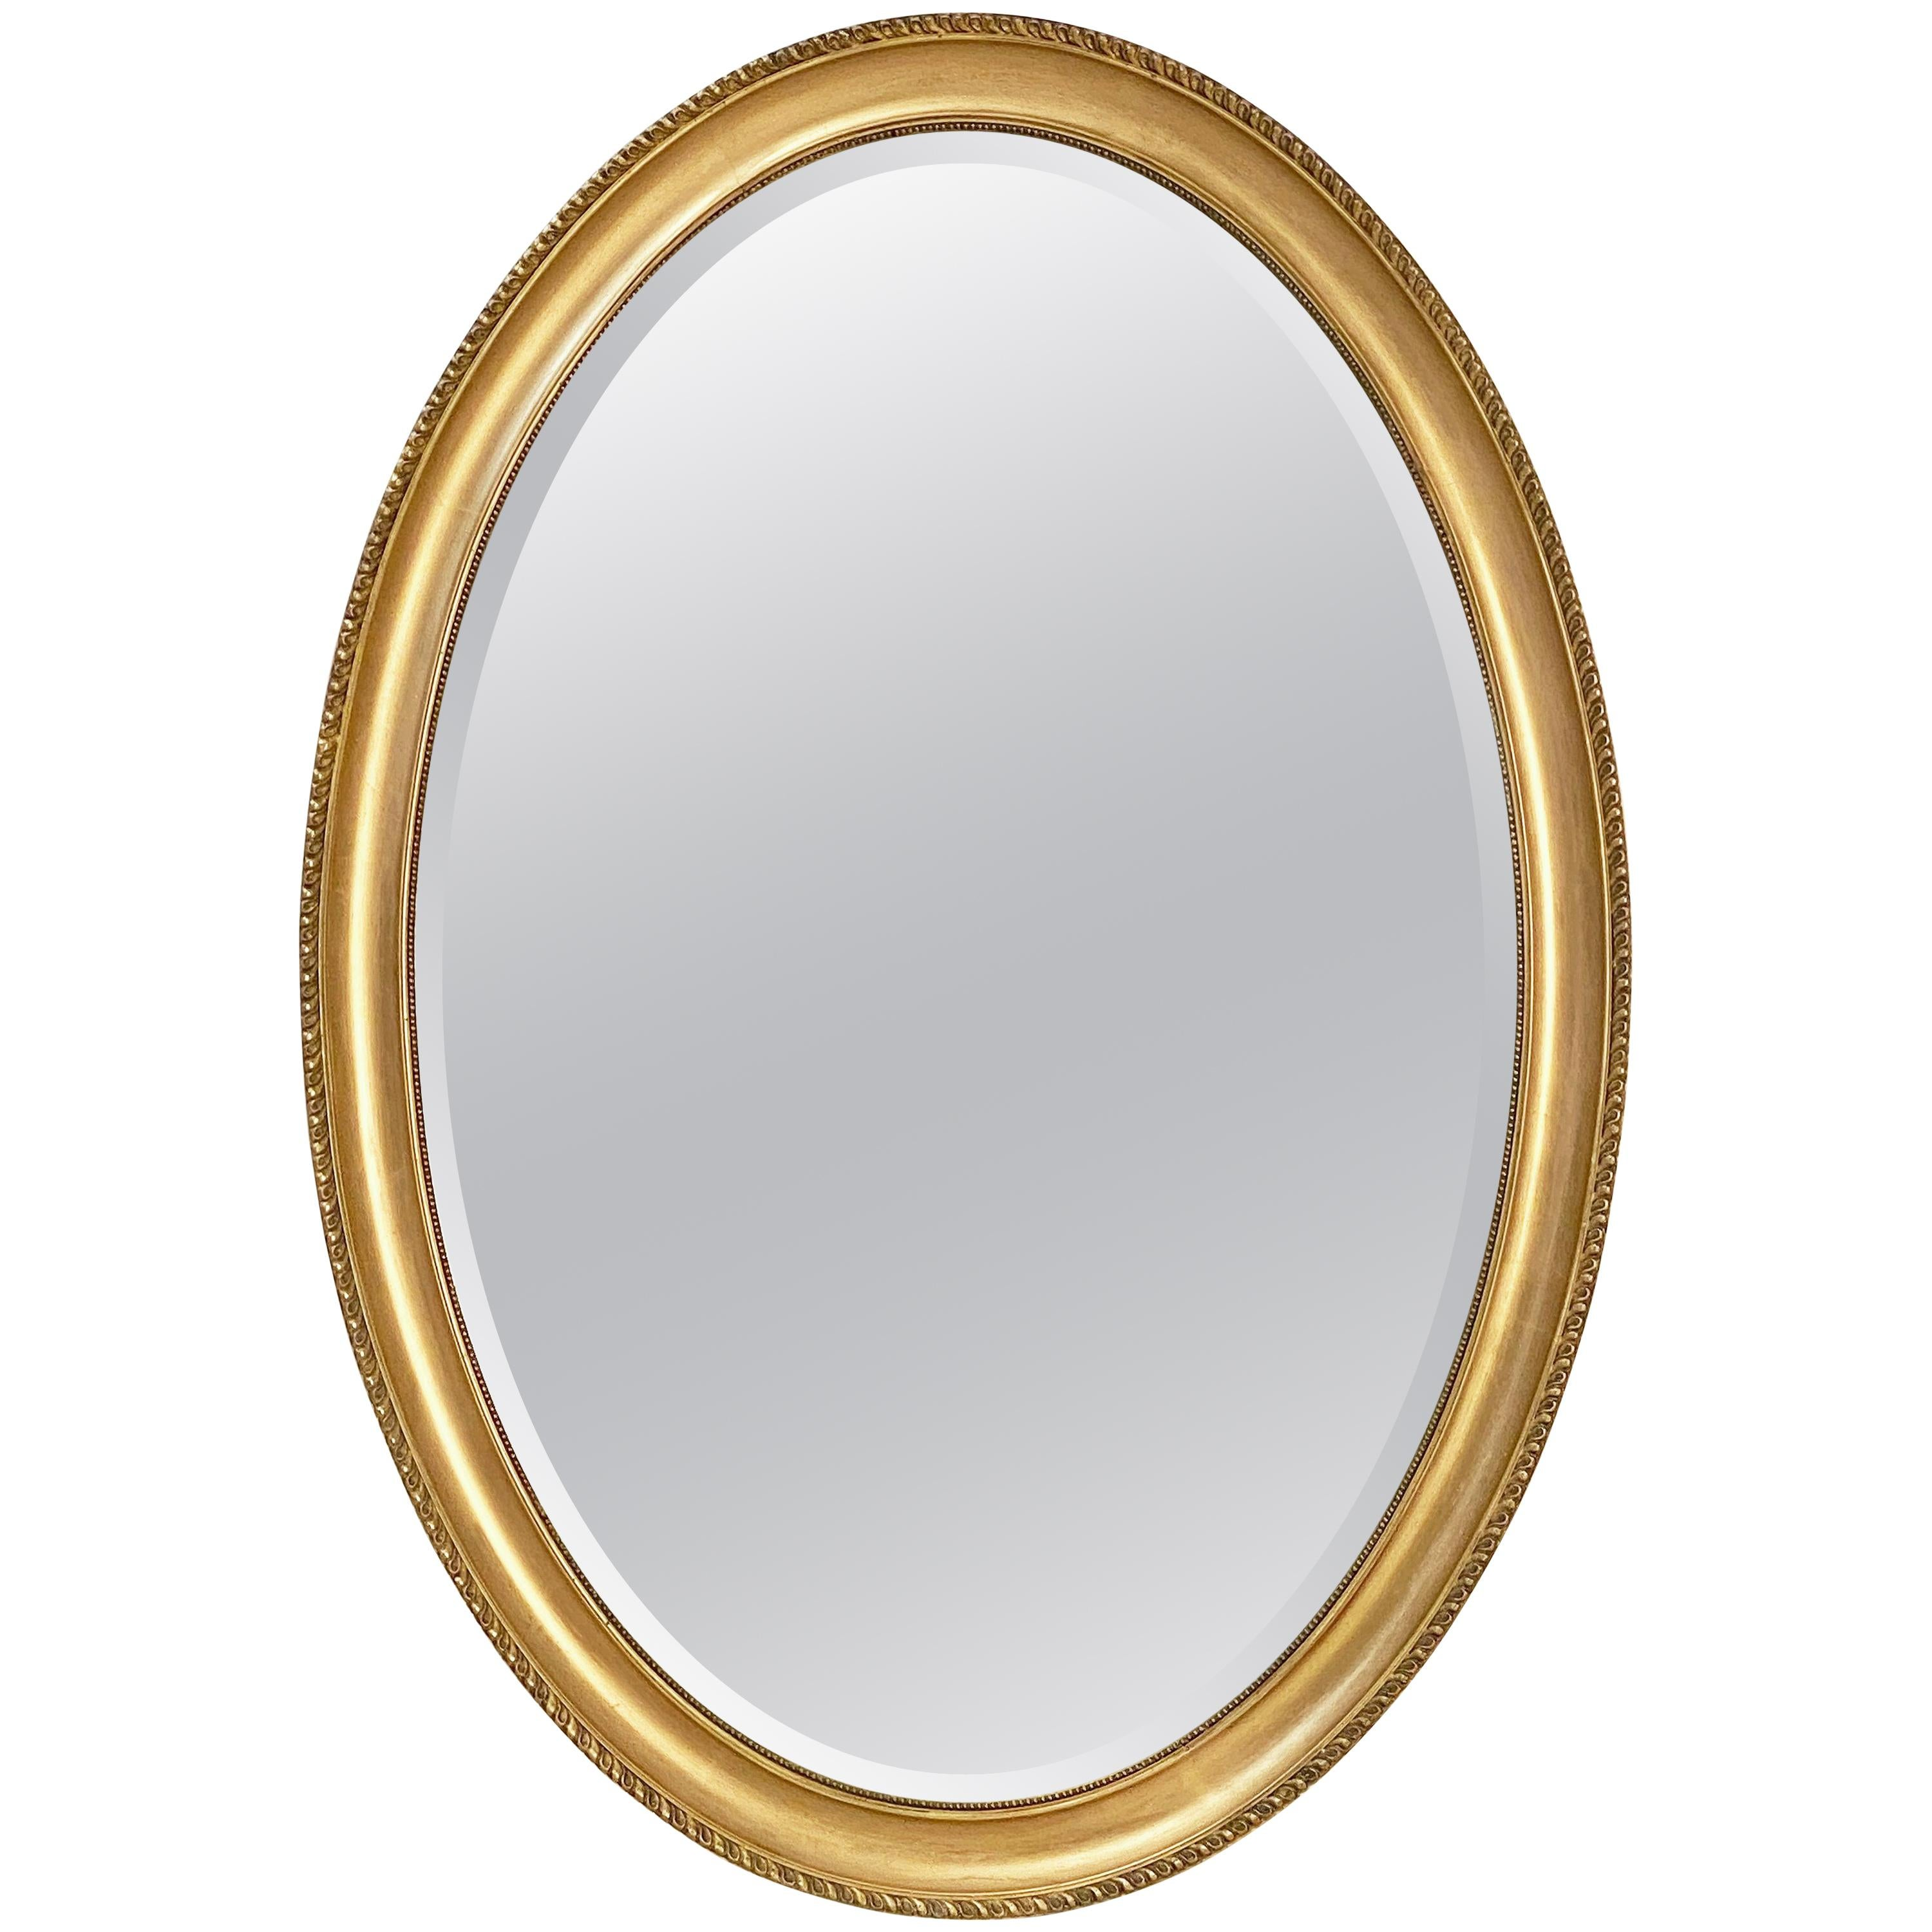 English Oval Beveled Mirror in Gilt Frame